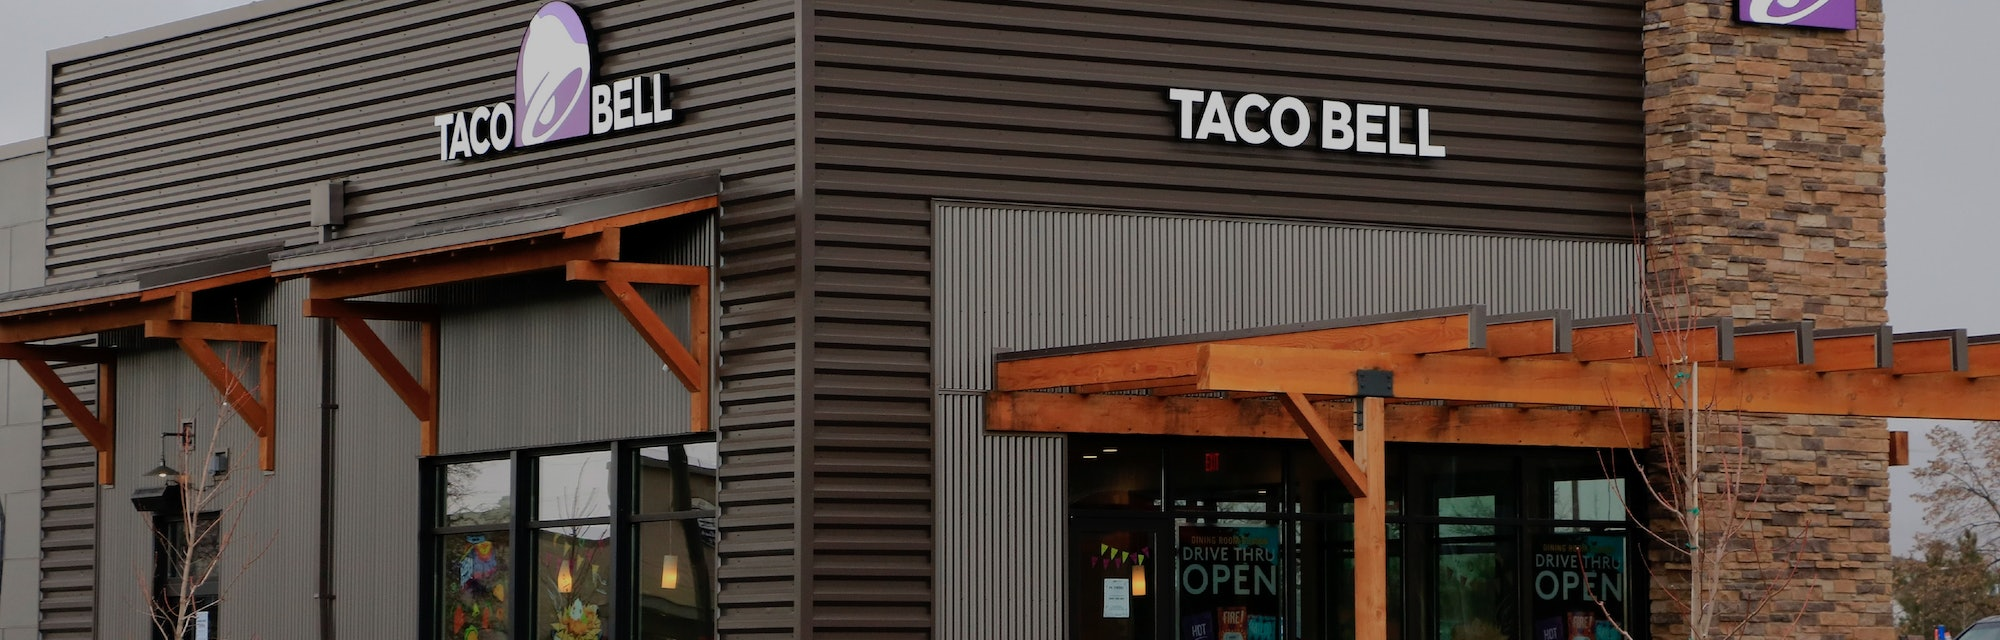 Taco Bell fast food restaurant showing logo on outside walls, northern Idaho. (Photo by: Don & Melin...